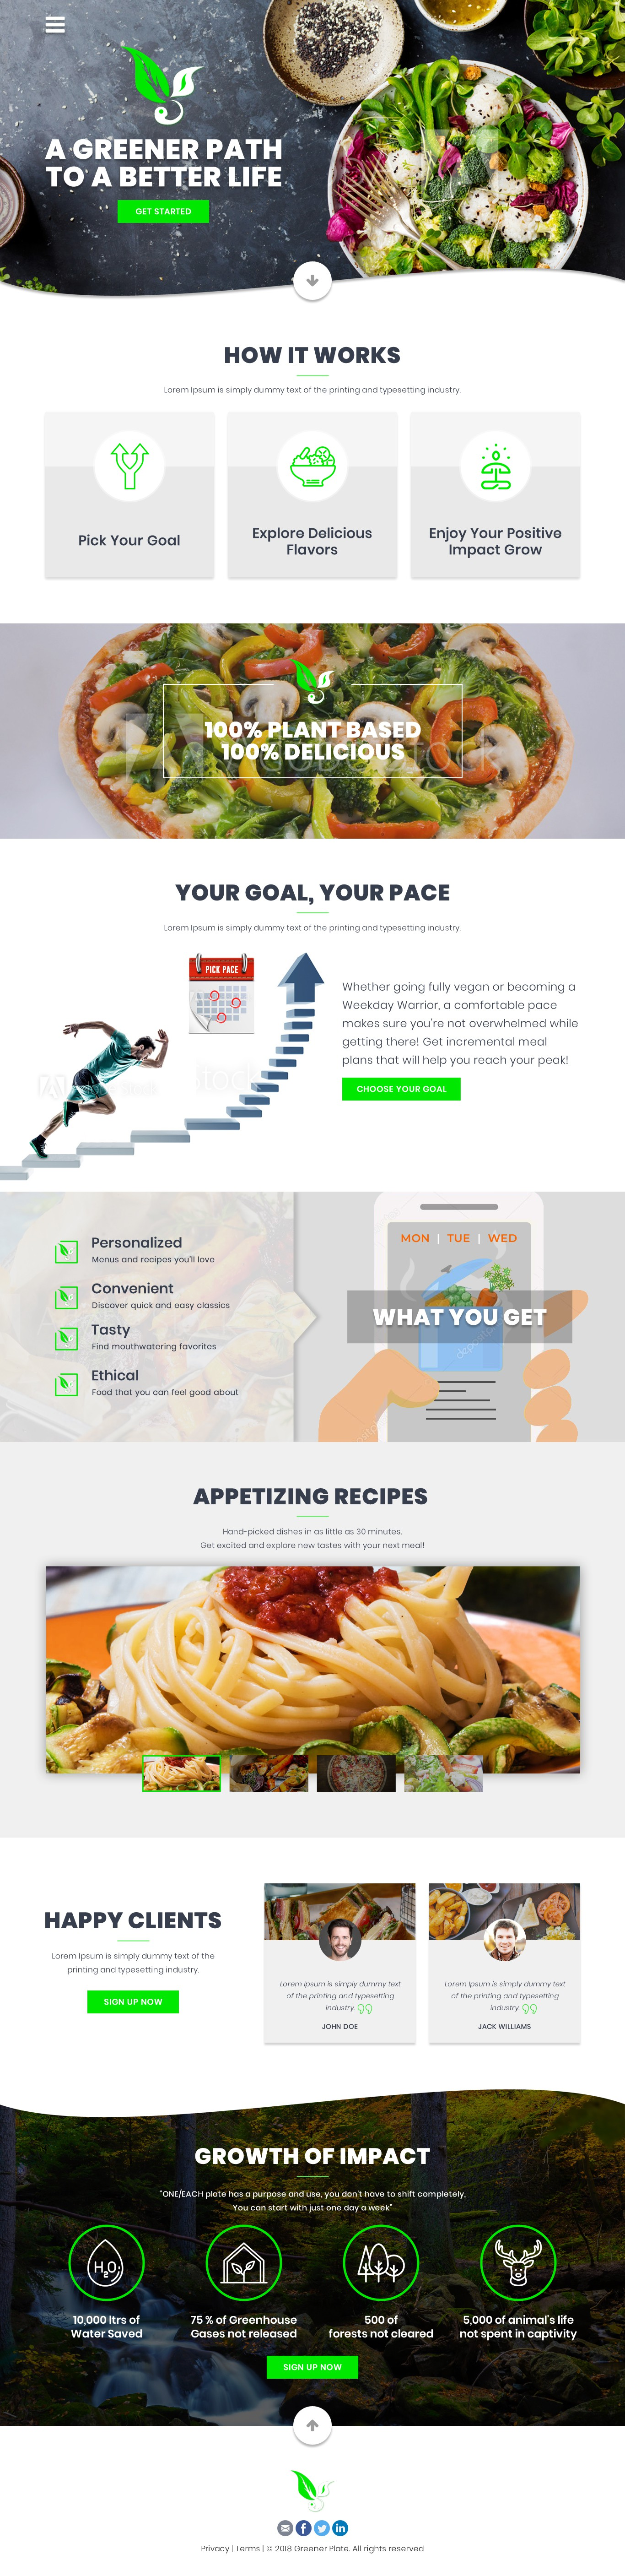 Create a appetizing landing page for a plant-based eating platform